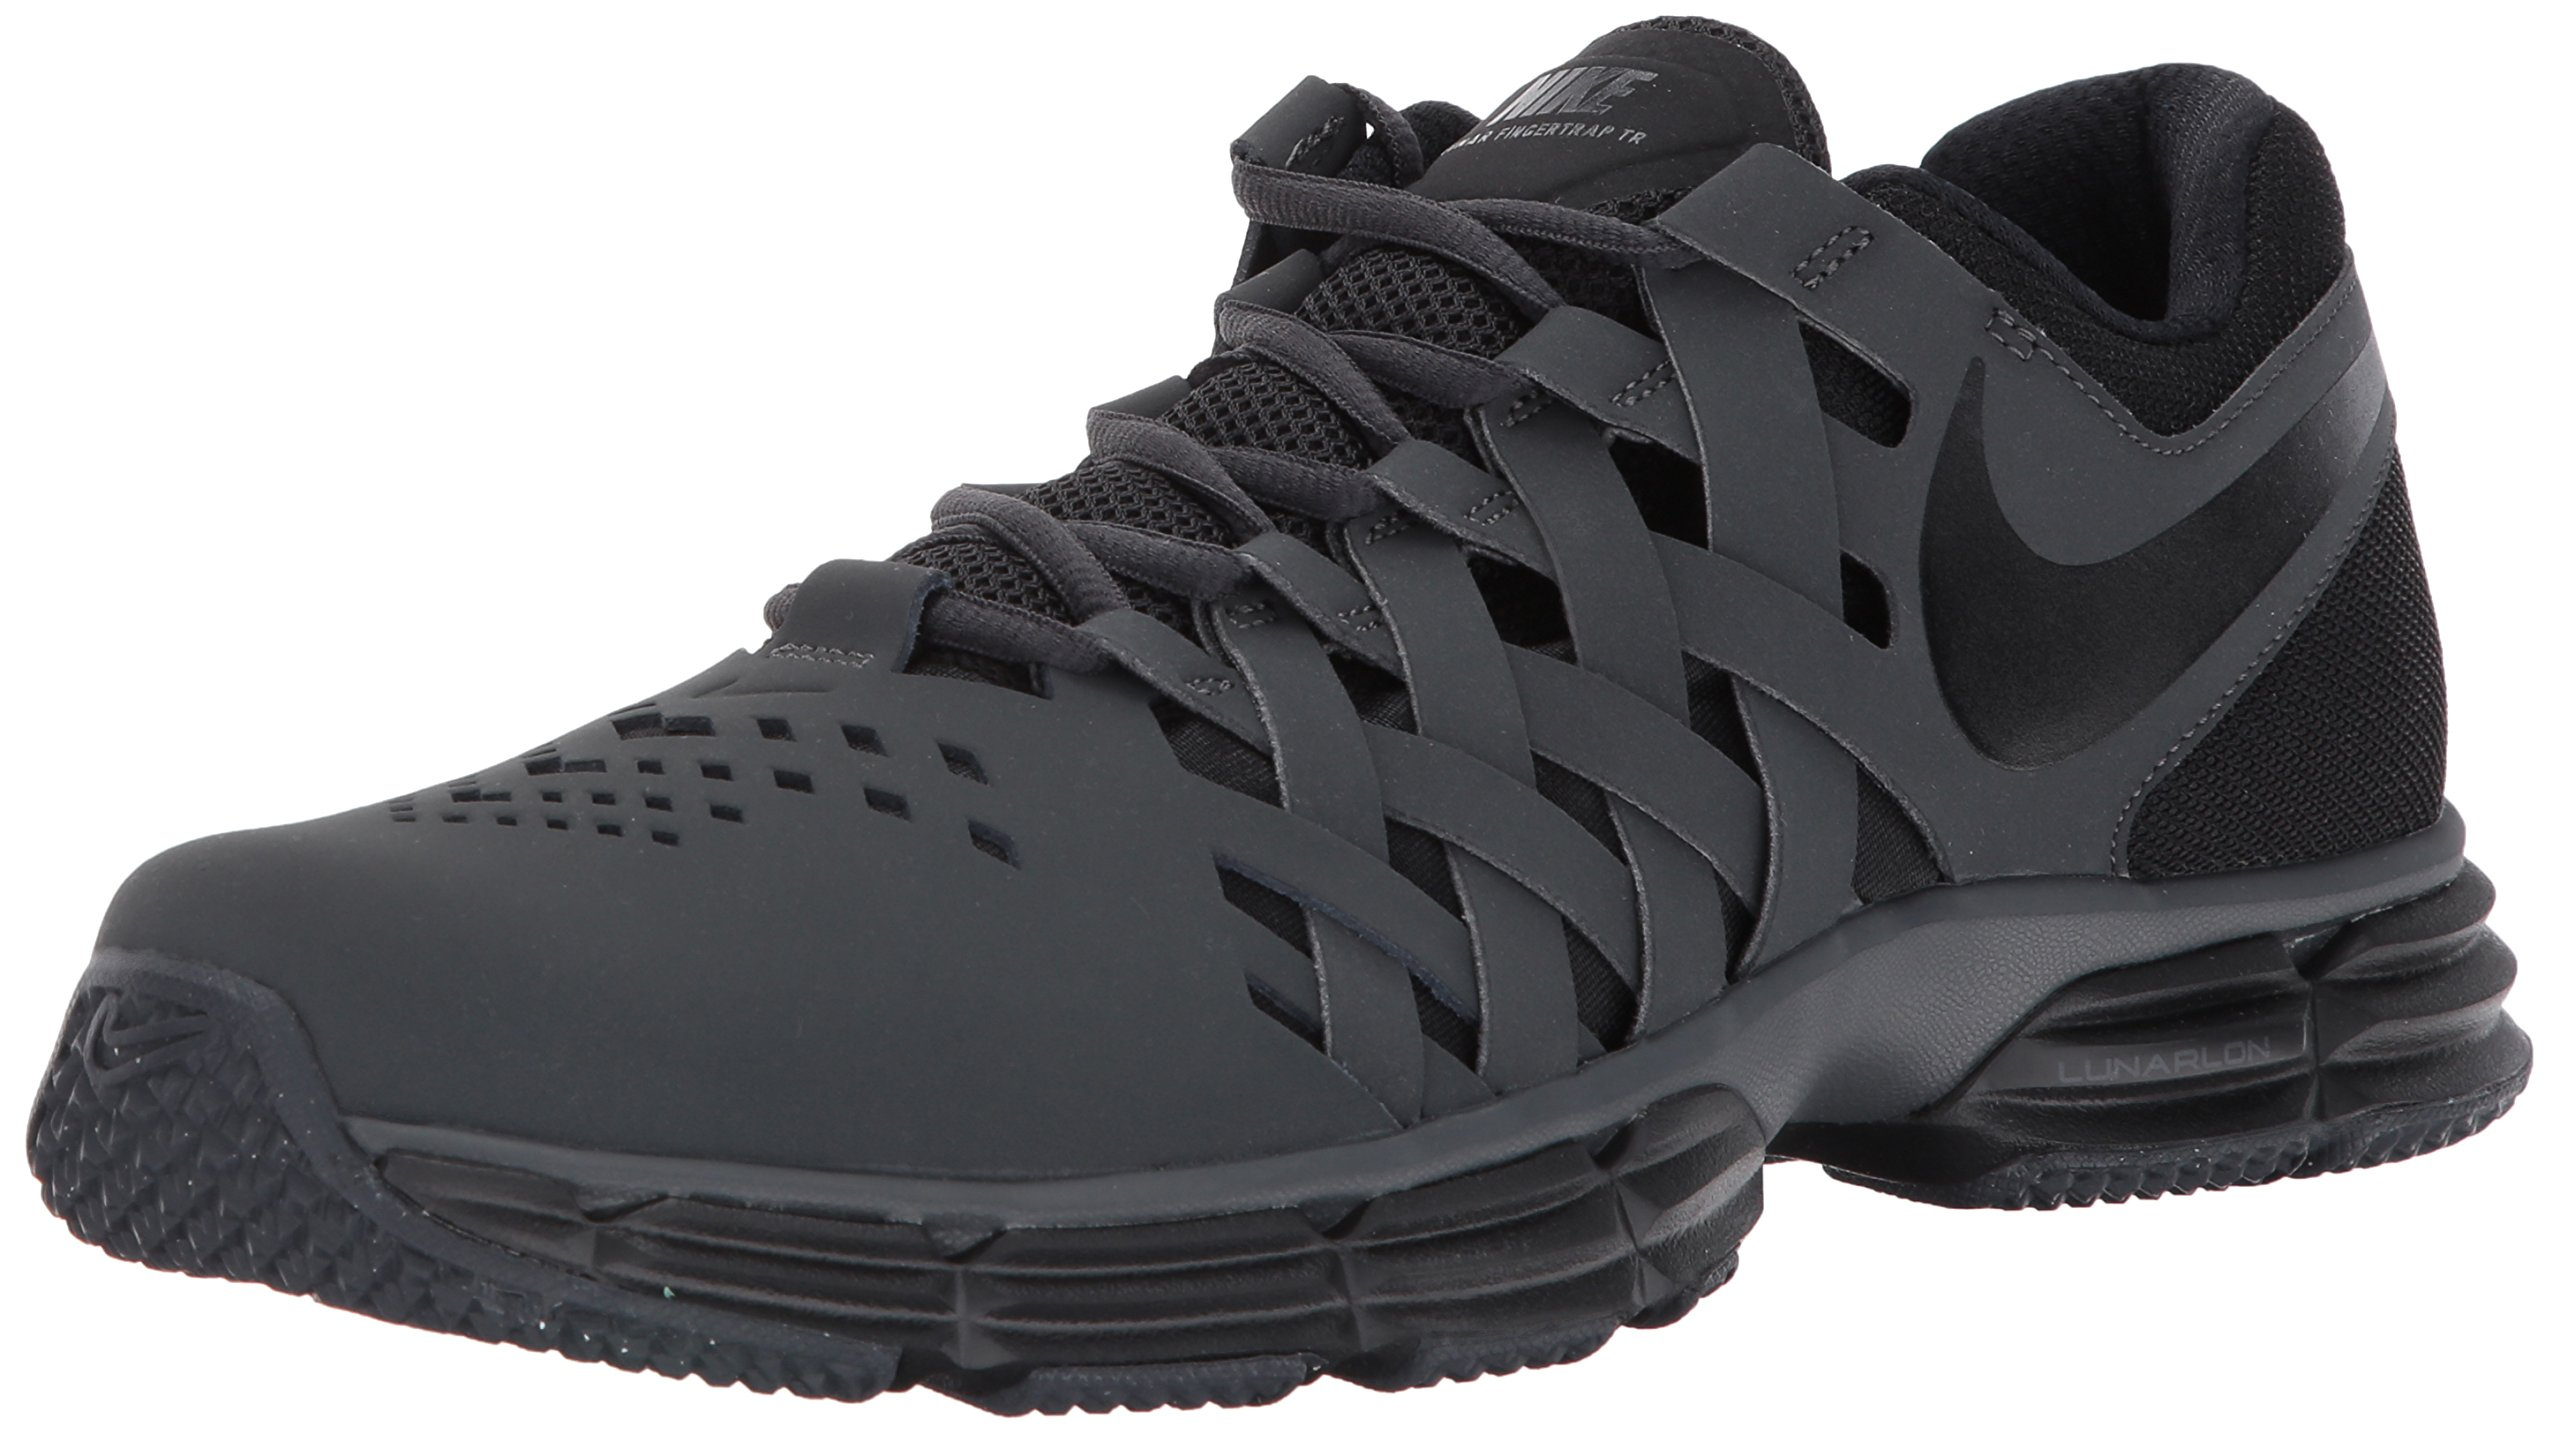 NIKE Men's Lunar Fingertrap Cross Trainer, Anthracite/Black, 11.0 Regular US by NIKE